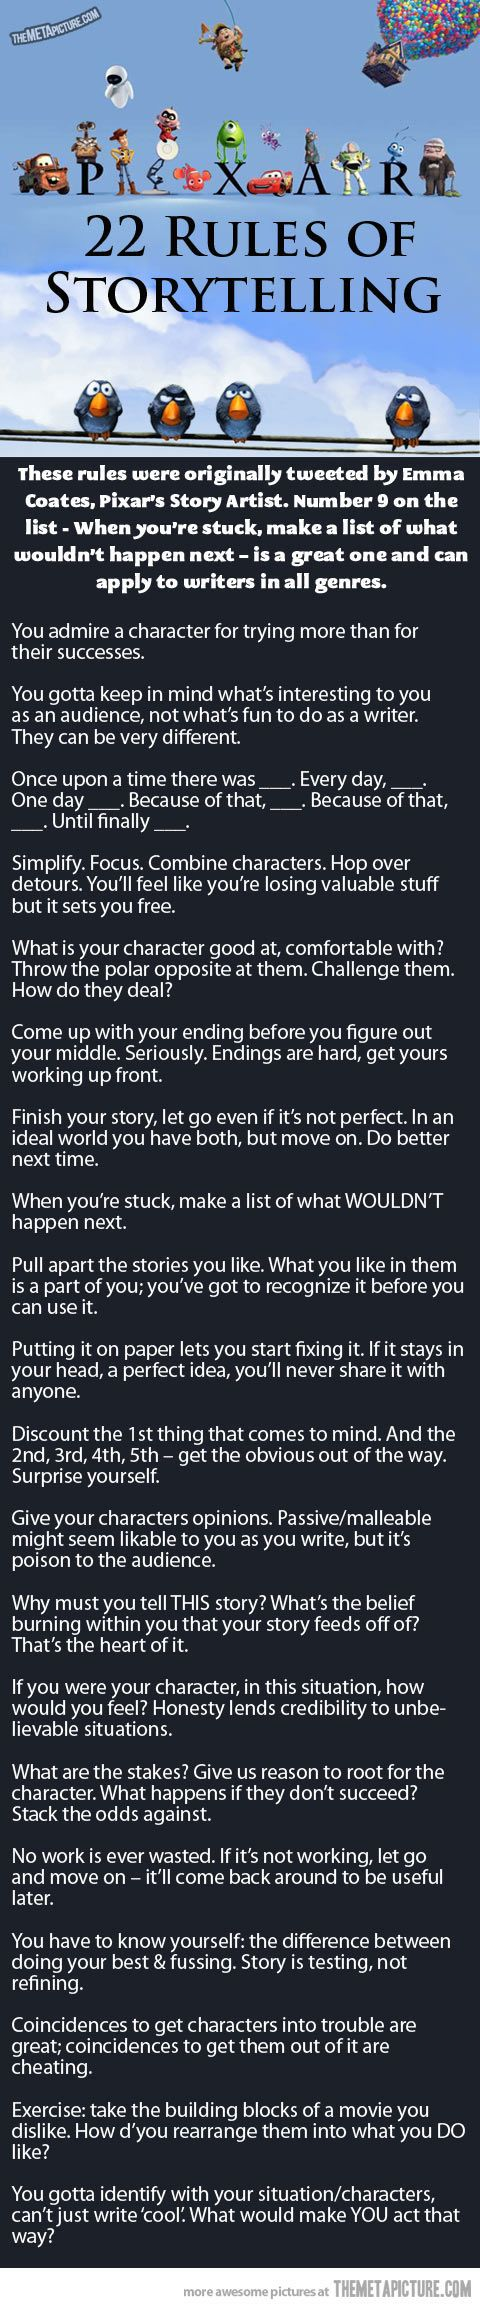 Pixar's Rules Of Storytelling. Helpful, maybe.